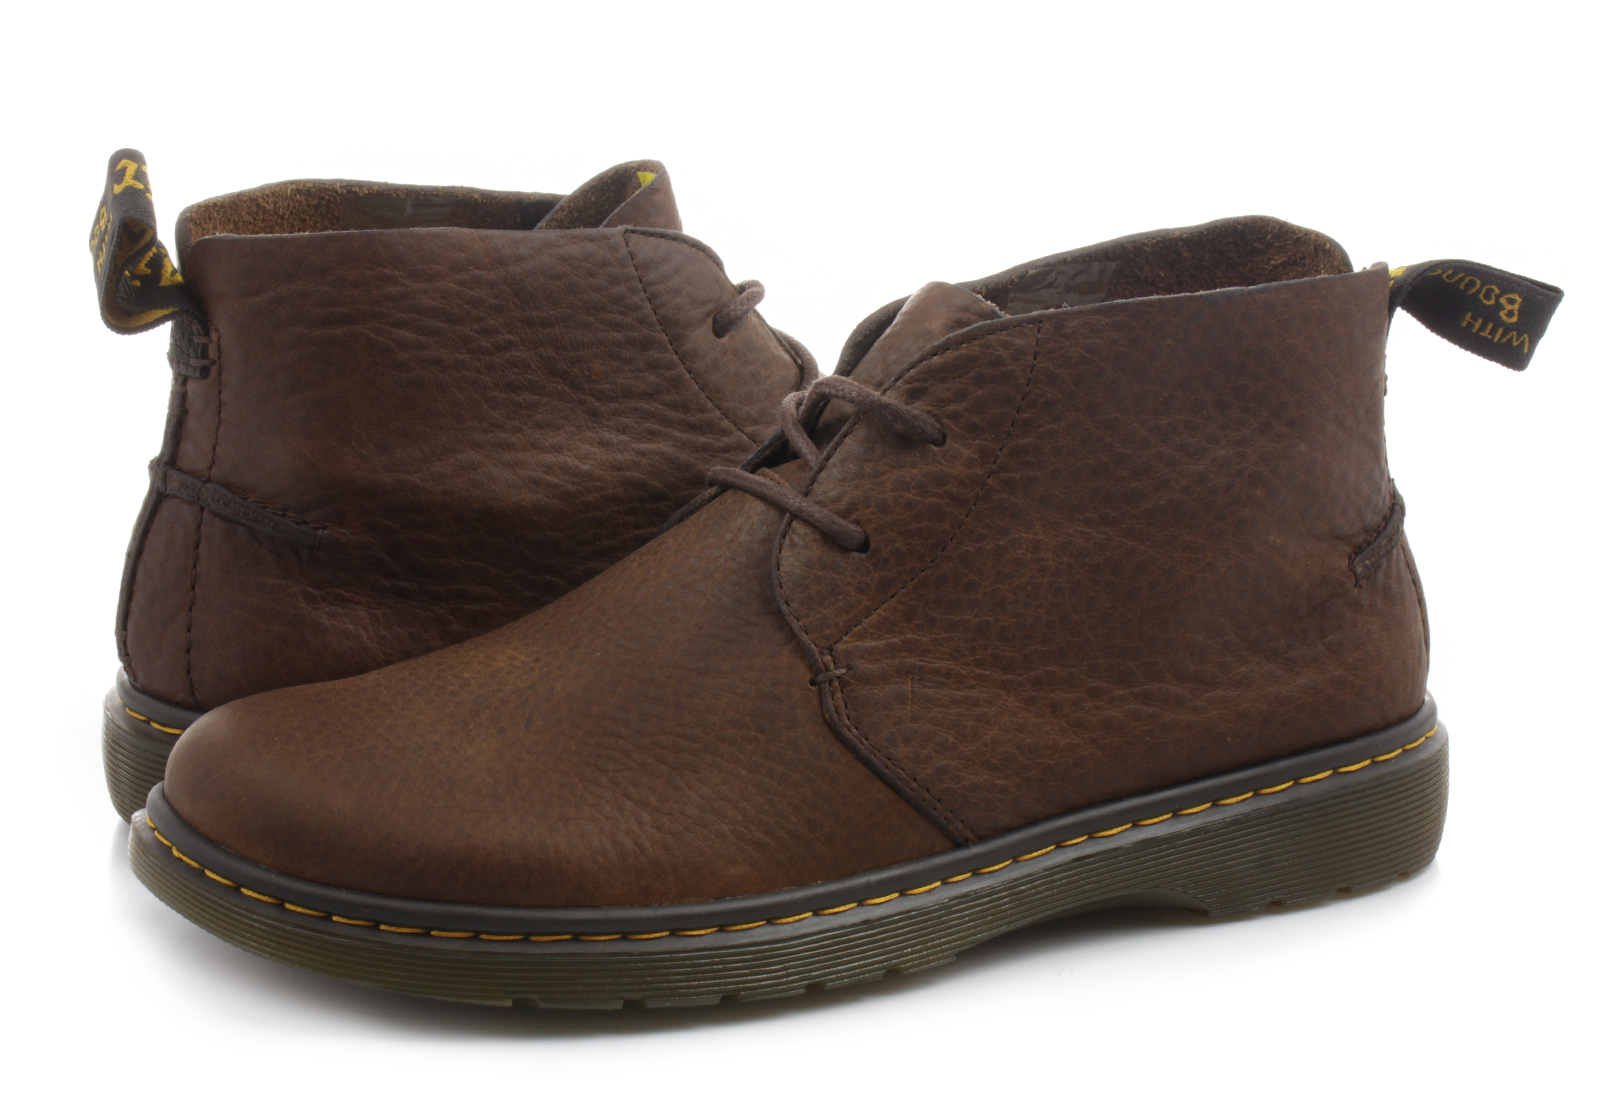 Dr Martens Cipő - Ember - Desert Boot - DM20391201 - Office Shoes ... 69f0a6ed2d